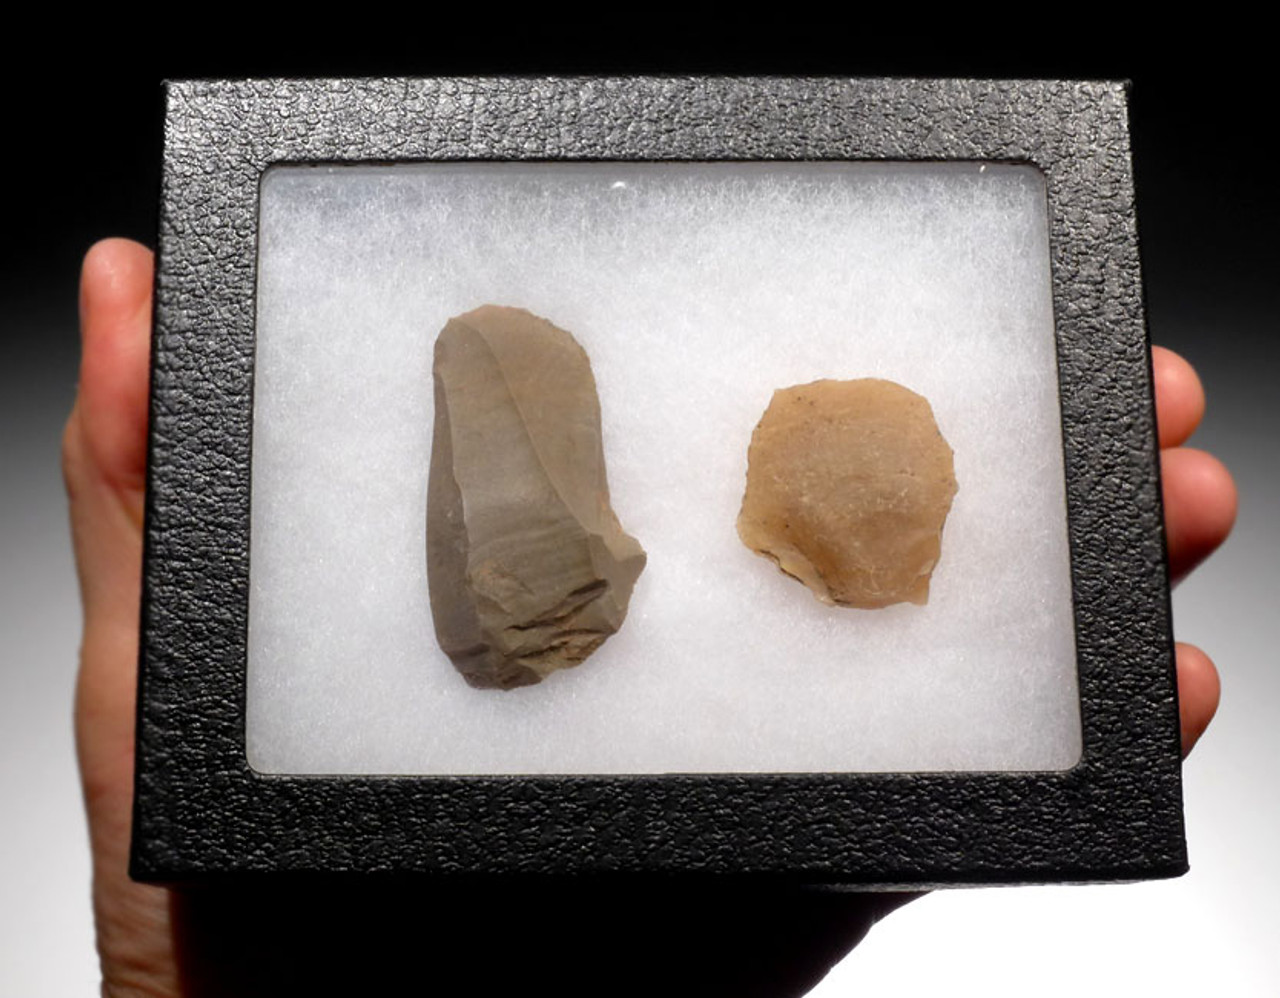 UP014 - SET OF TWO UPPER PALEOLITHIC MAGDALENIAN FLAKE TOOLS FROM GROTTE DU PLACARD IN FRANCE